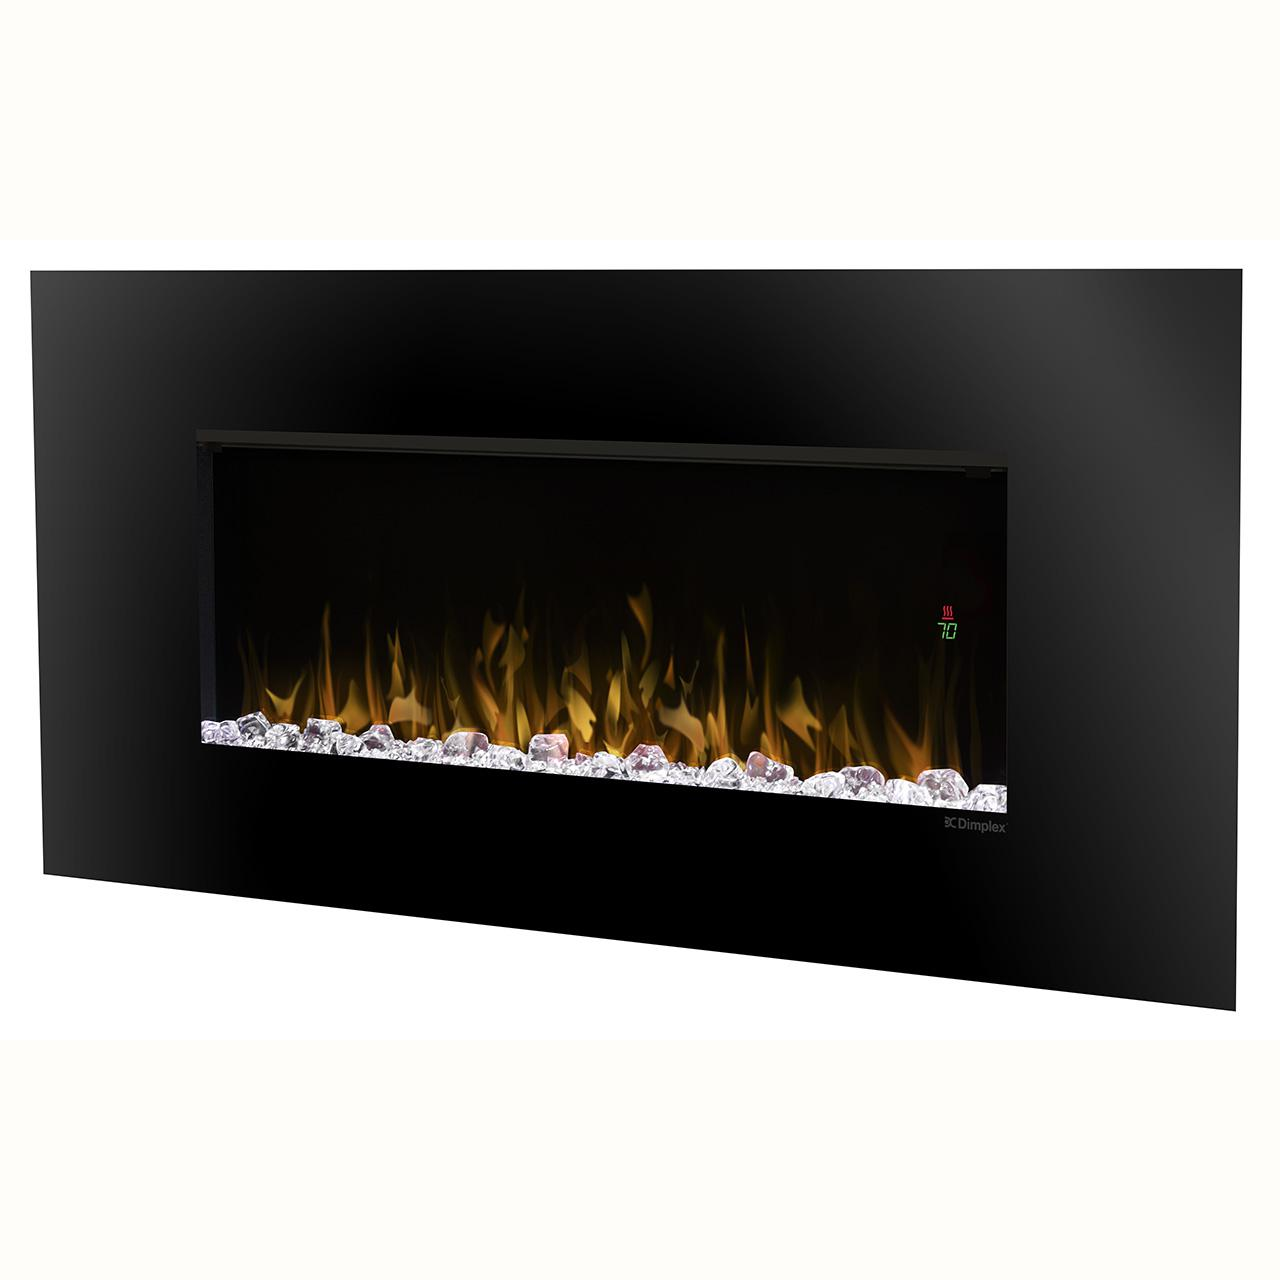 Dimplex Contempra 52-Inch Wall Mount Electric Fireplace -...